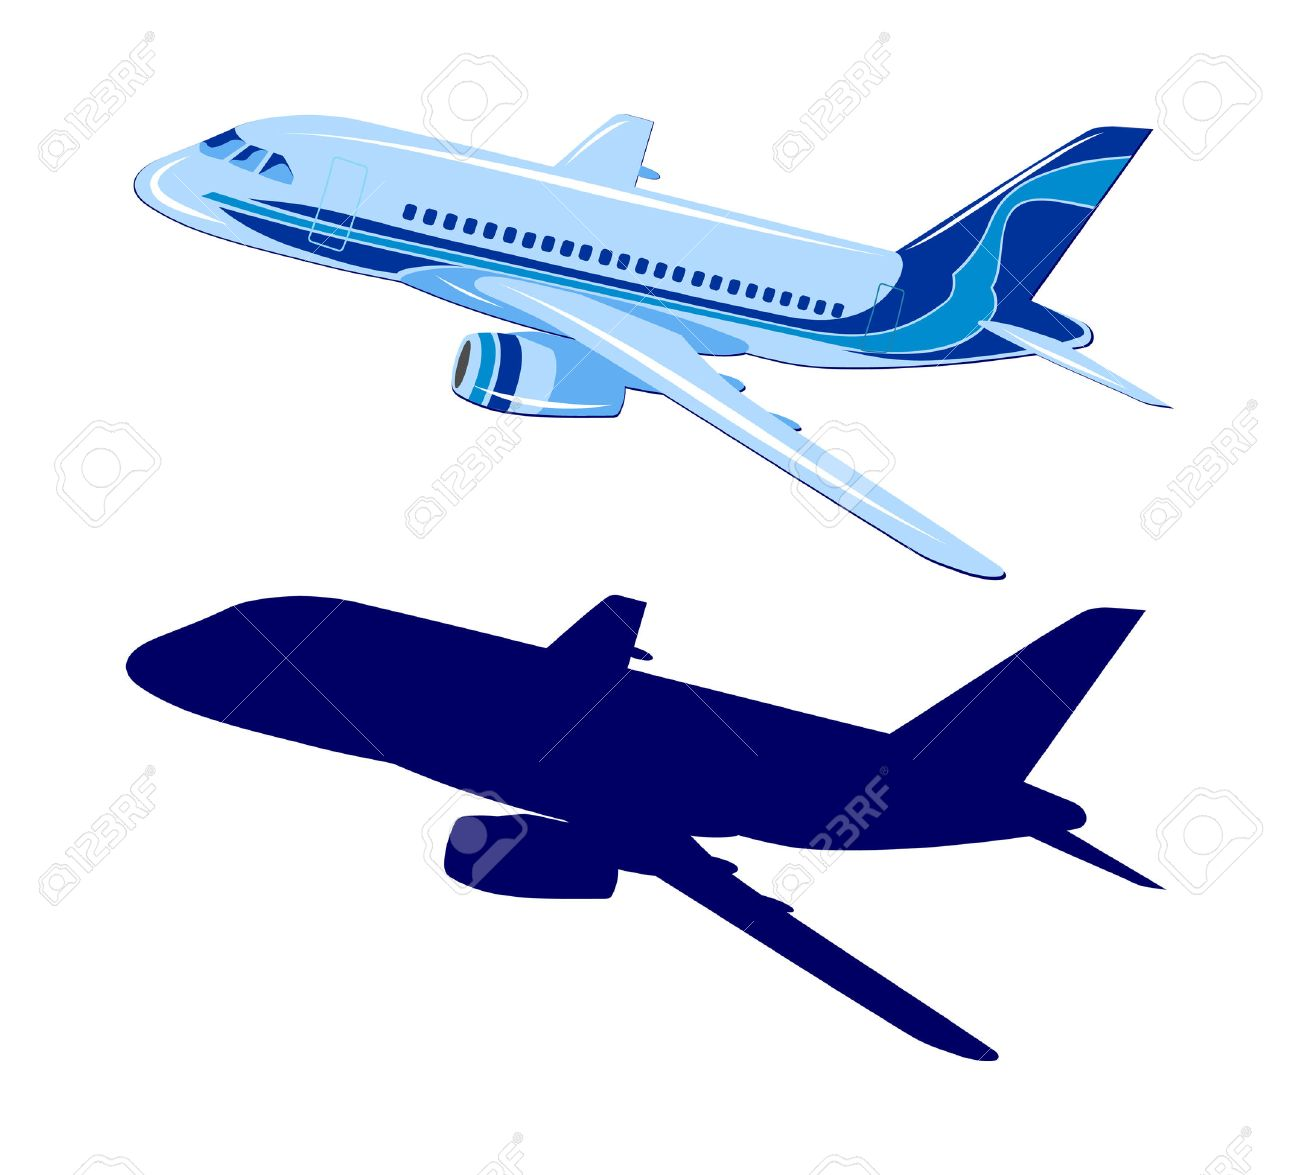 passenger aircraft vector plane on white background royalty free